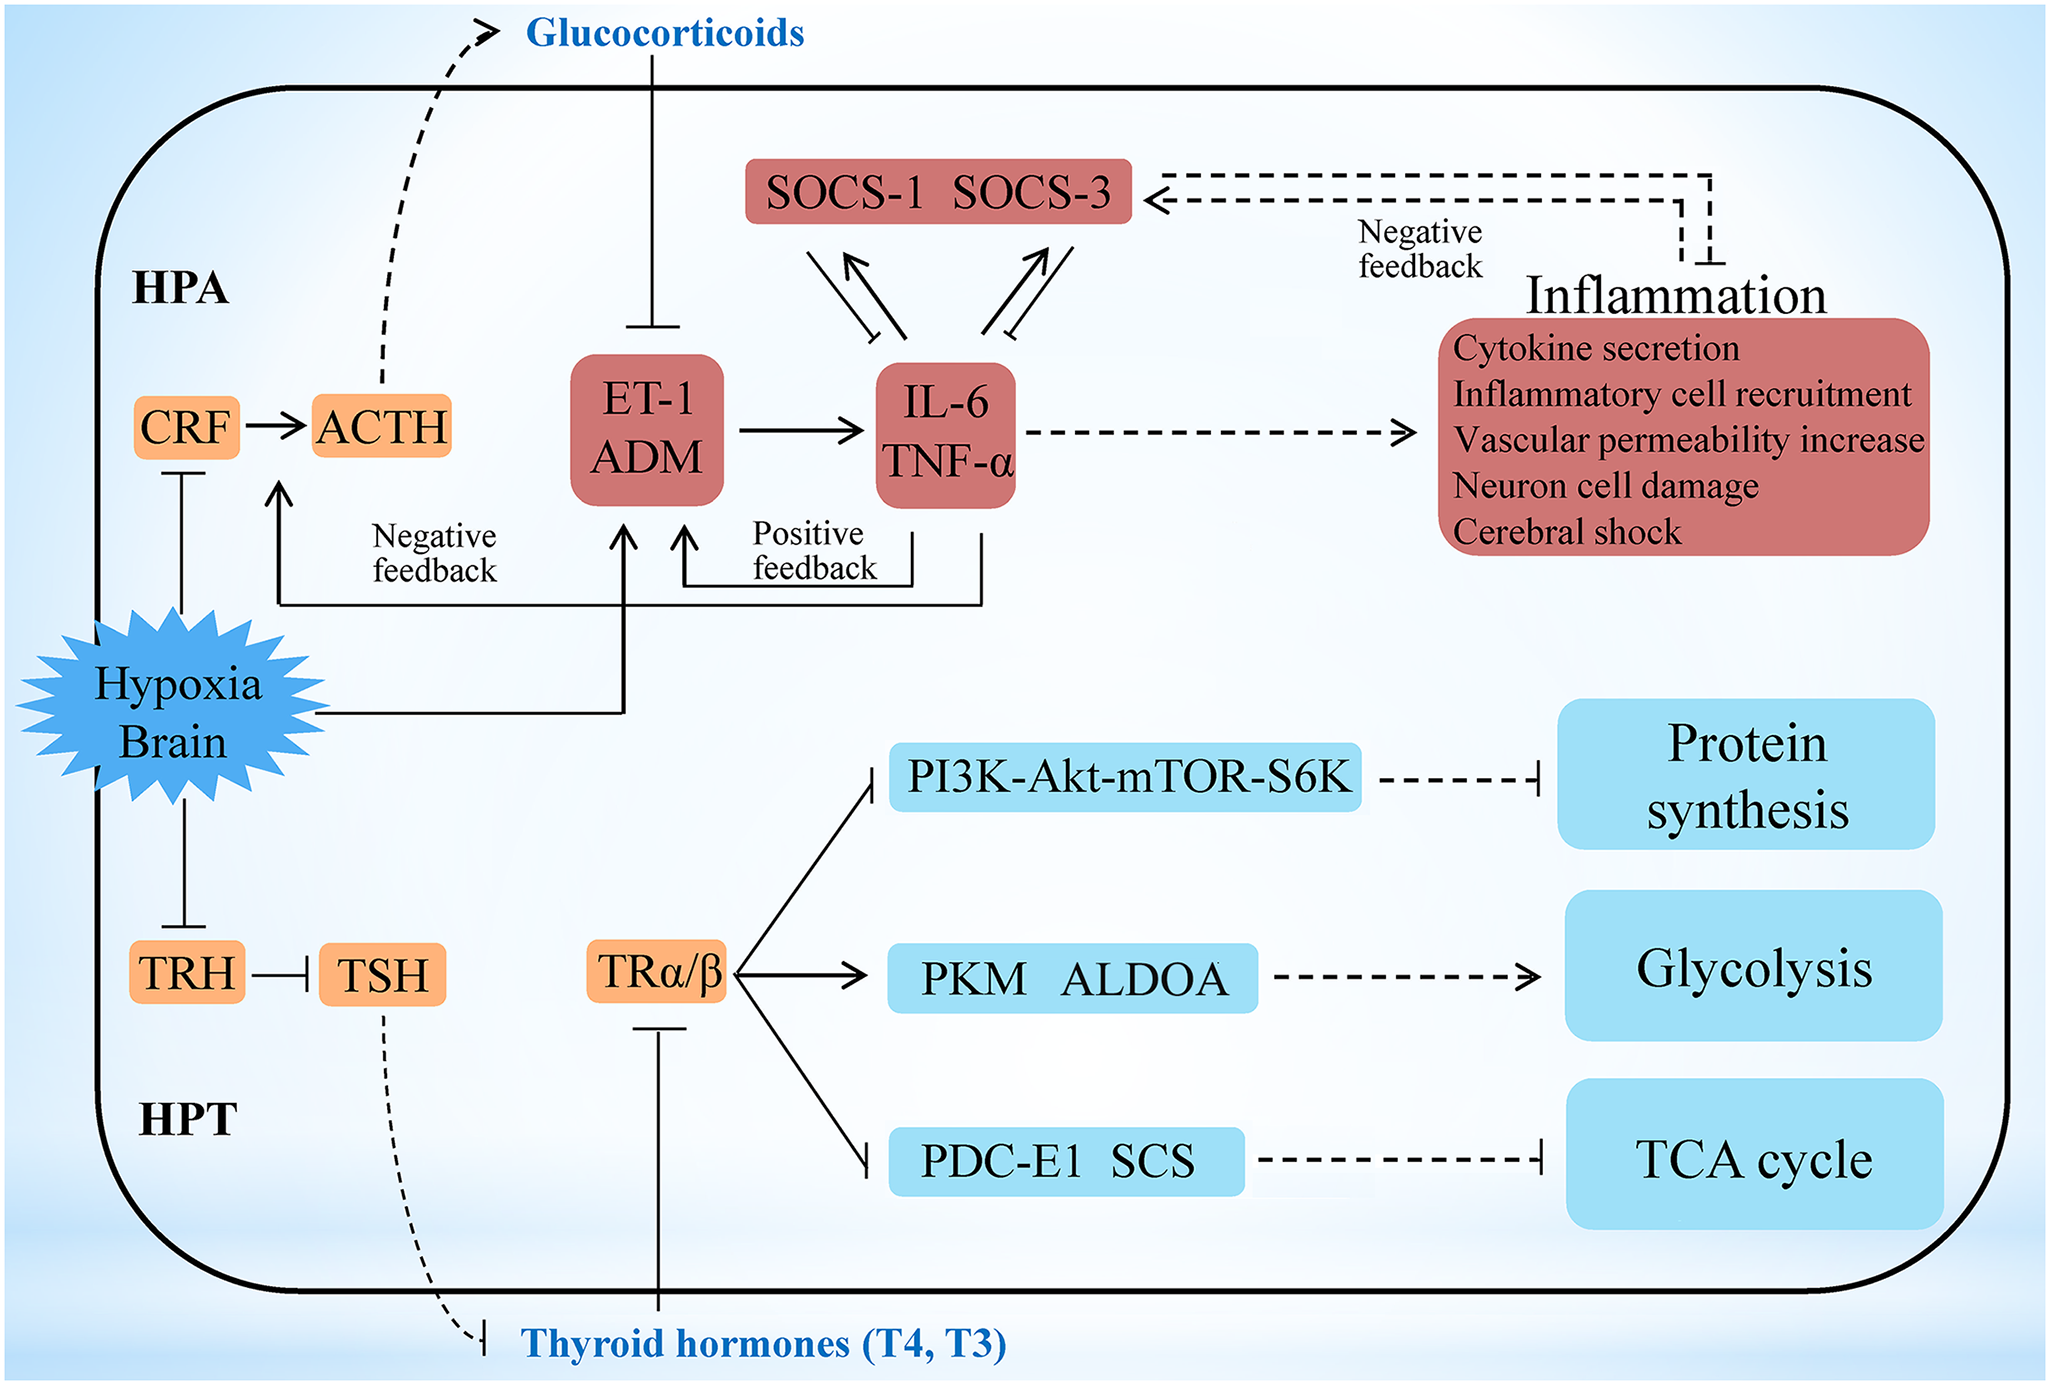 Hypoxia stress exerts responses involving the HPA and HPT axes.